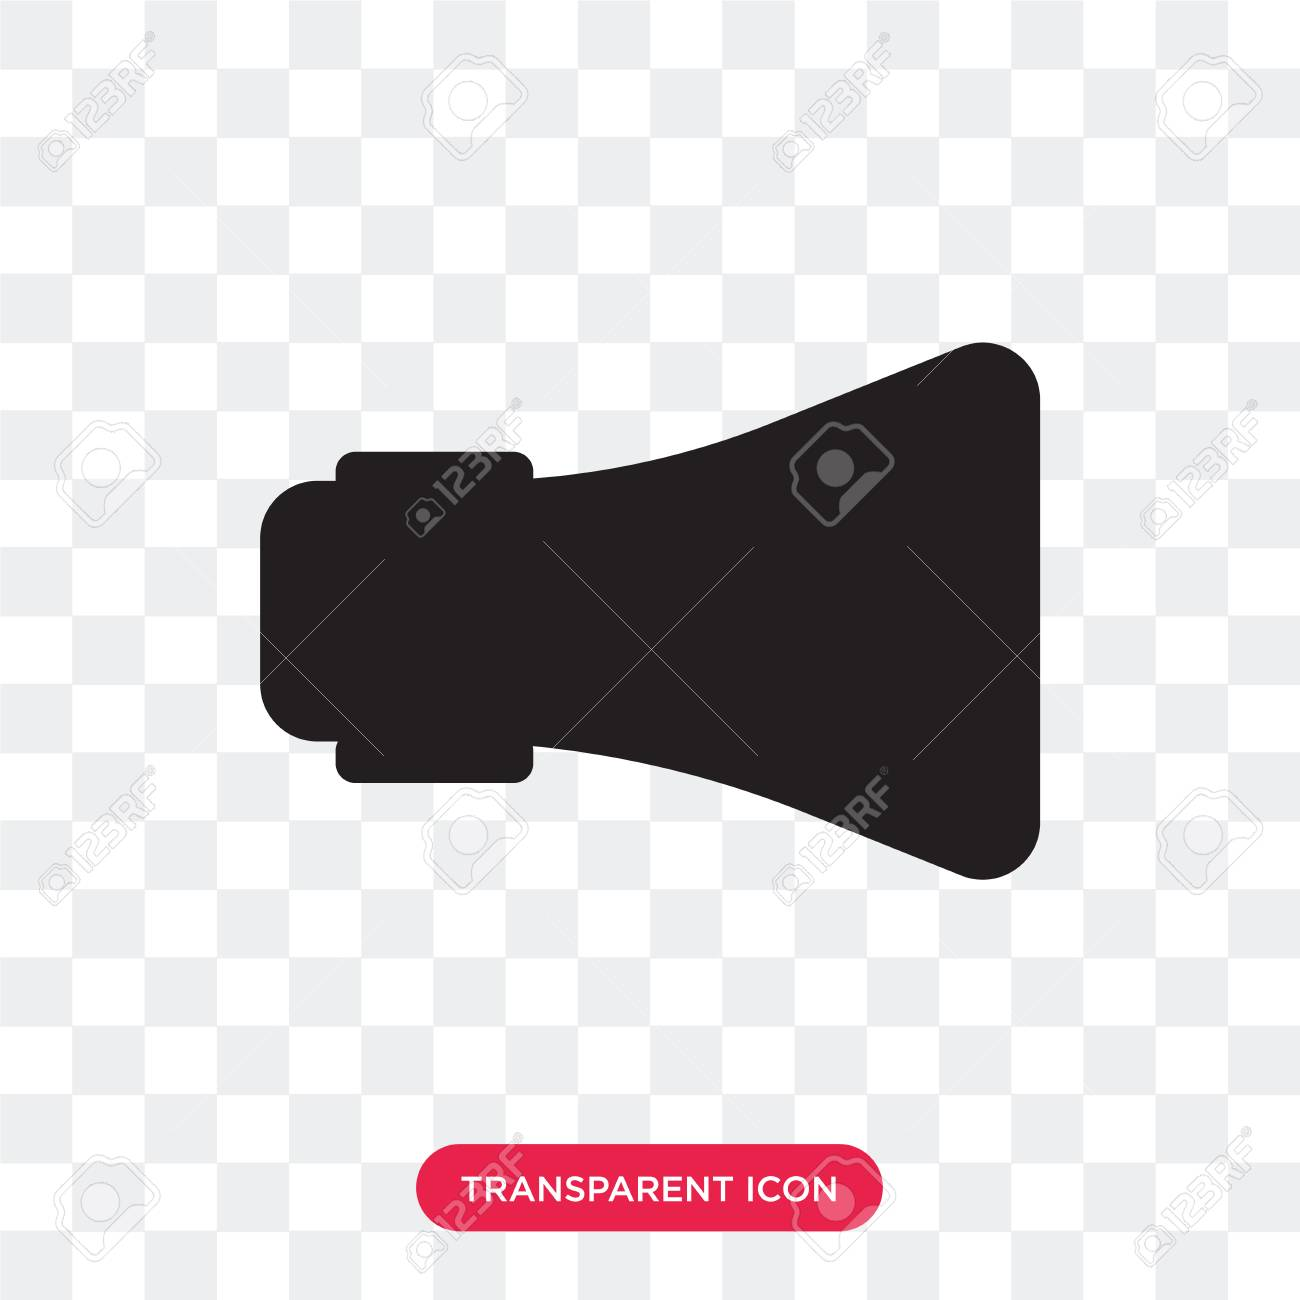 loudspeaker vector icon isolated on transparent background loudspeaker royalty free cliparts vectors and stock illustration image 107765594 123rf com